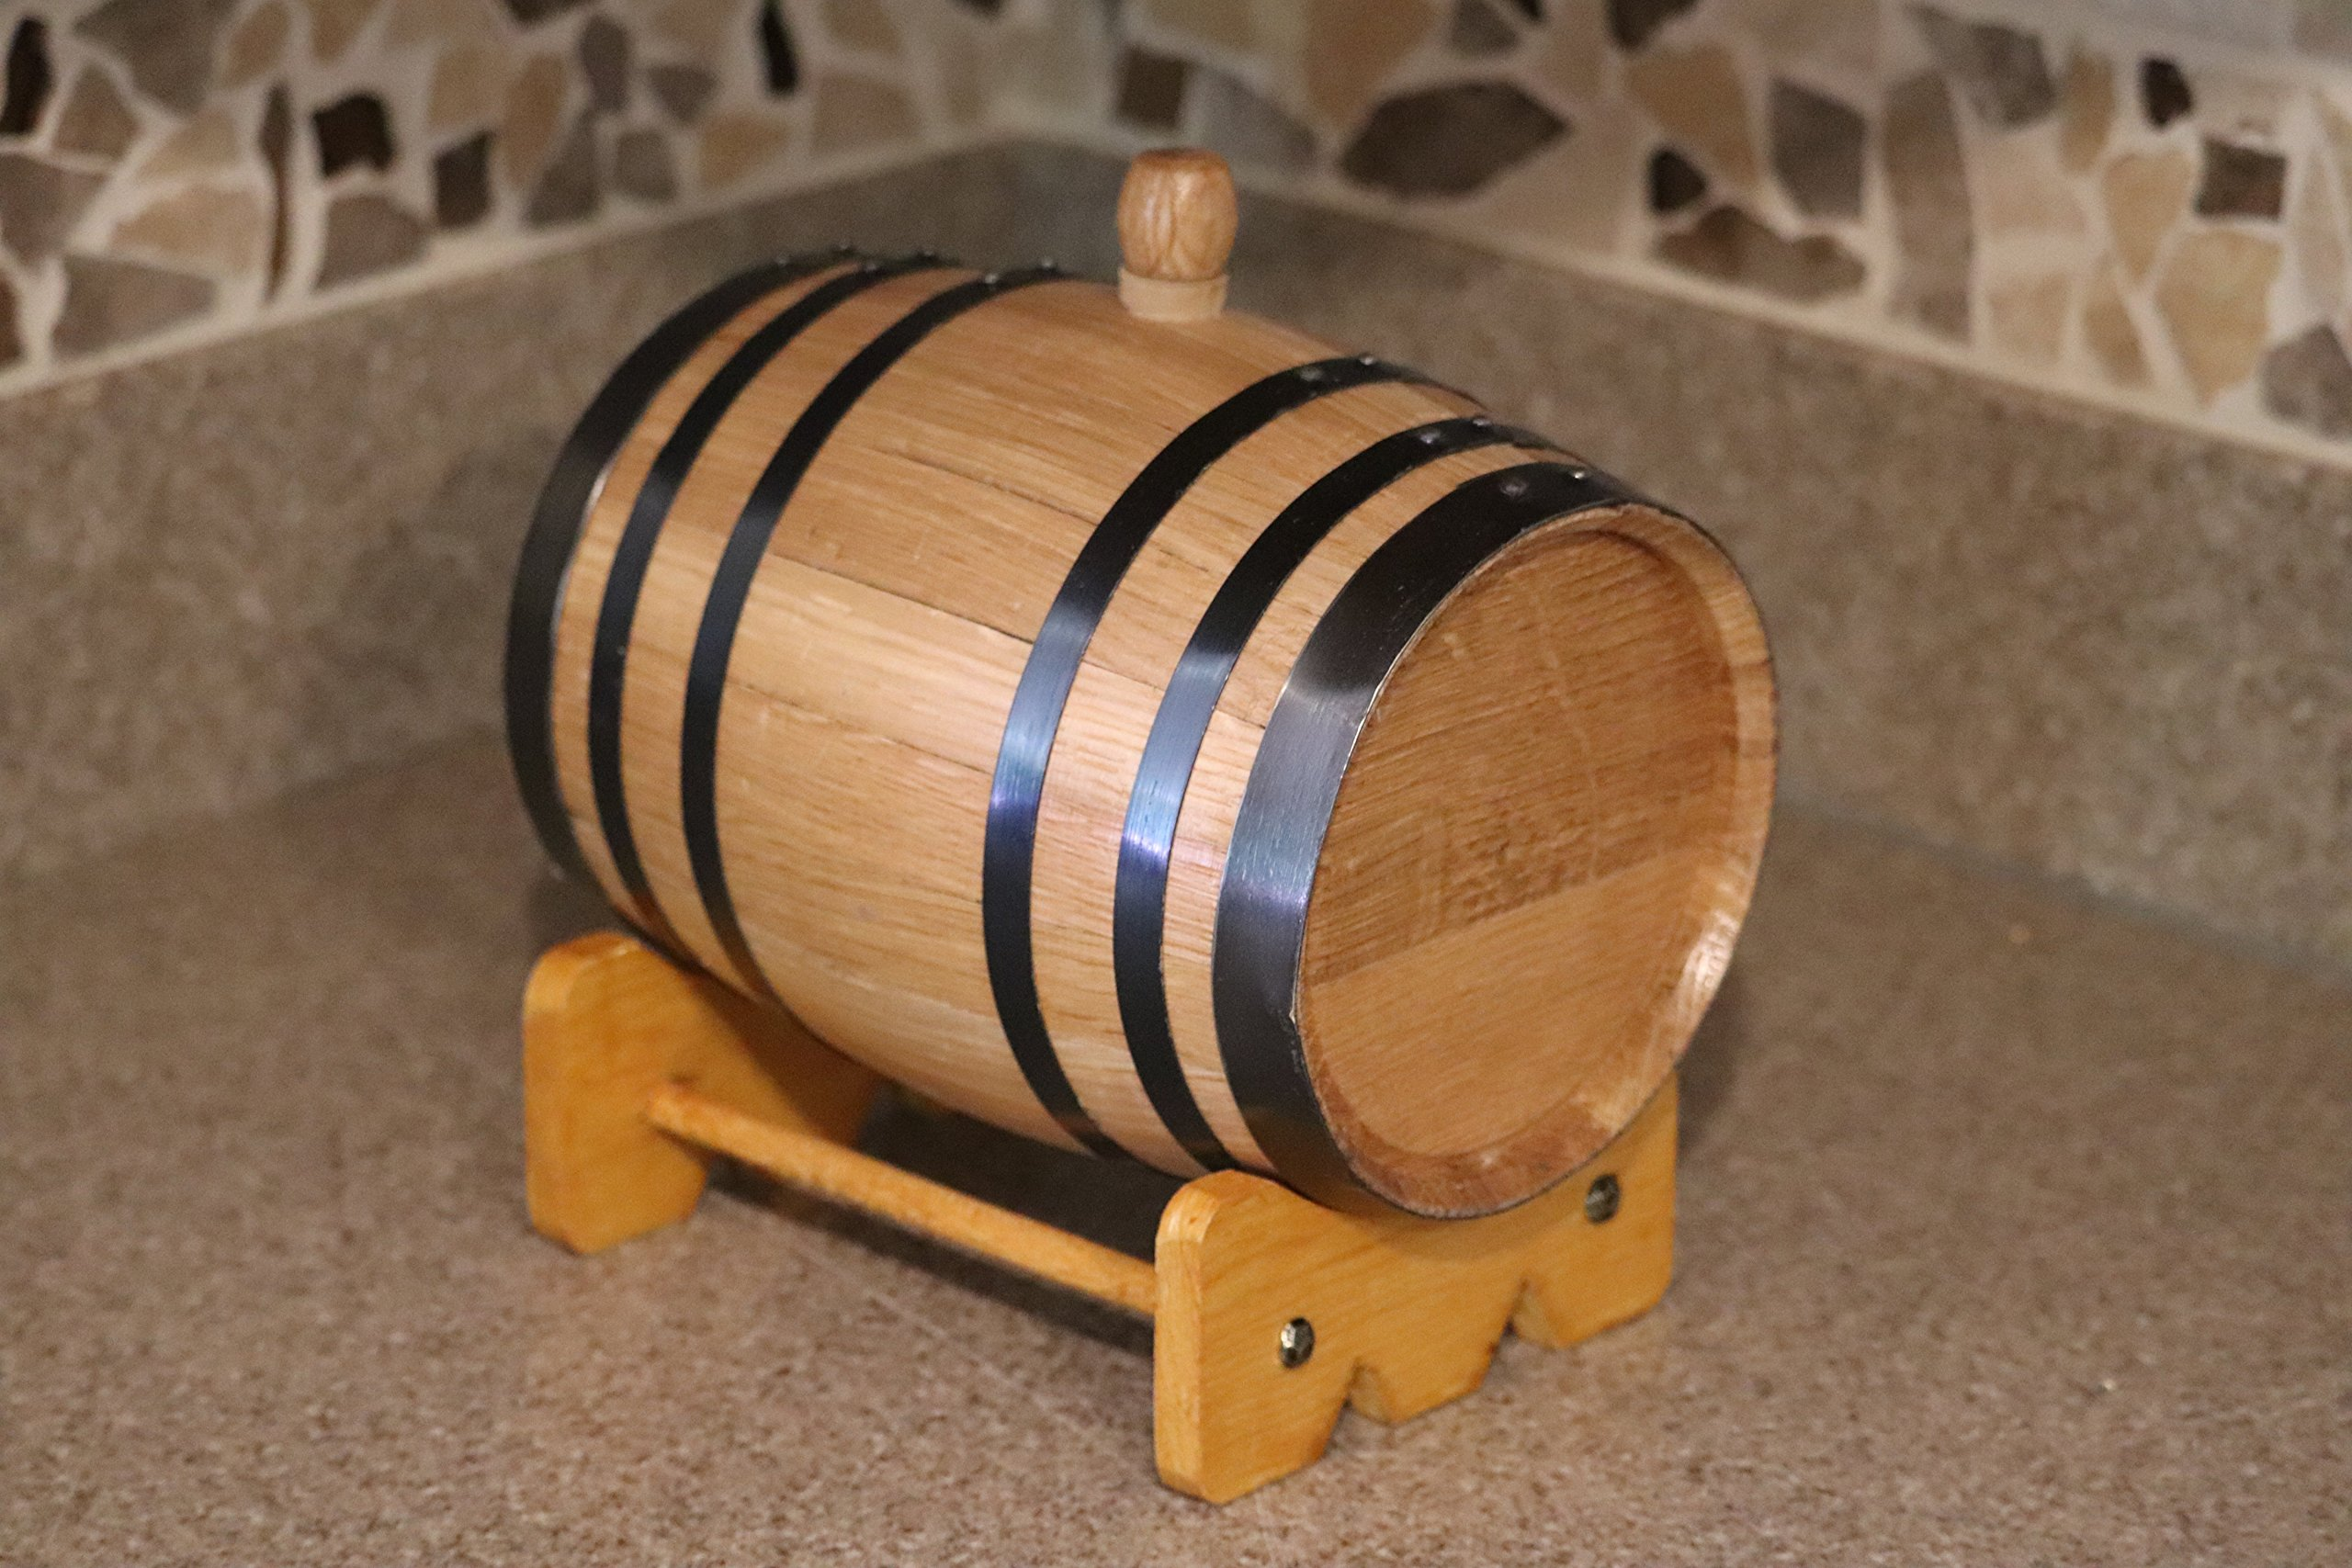 Deep South Barrels Personalized Oak Barrel | American White Oak | Custom Laser Engraved | Dispenser for Aging Whiskey, Rum, Tequila, Bourbon, Vinegar and Wine by Deep South Barrels (Image #6)